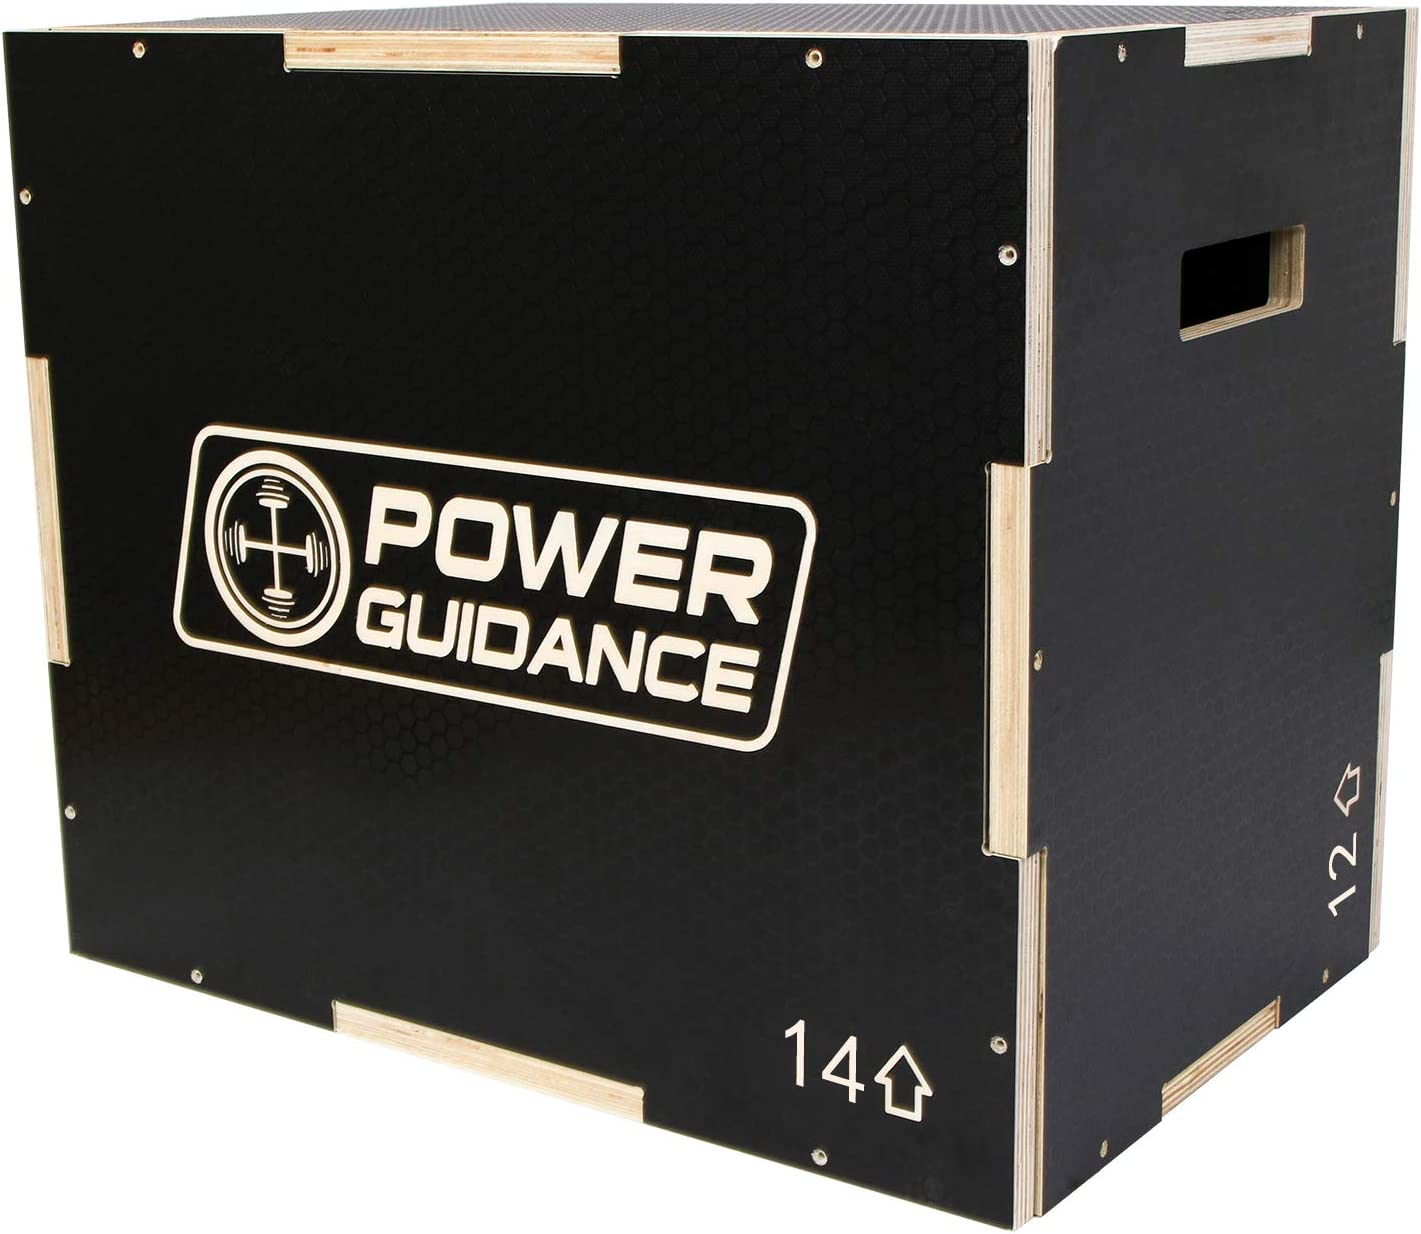 POWER GUIDANCE 3 in 1 Wood Plyometric Jump Box 60//50//45 cm Plyo Box for Jump Training and Conditioning 40//35//30 cm 75//60//50 cm